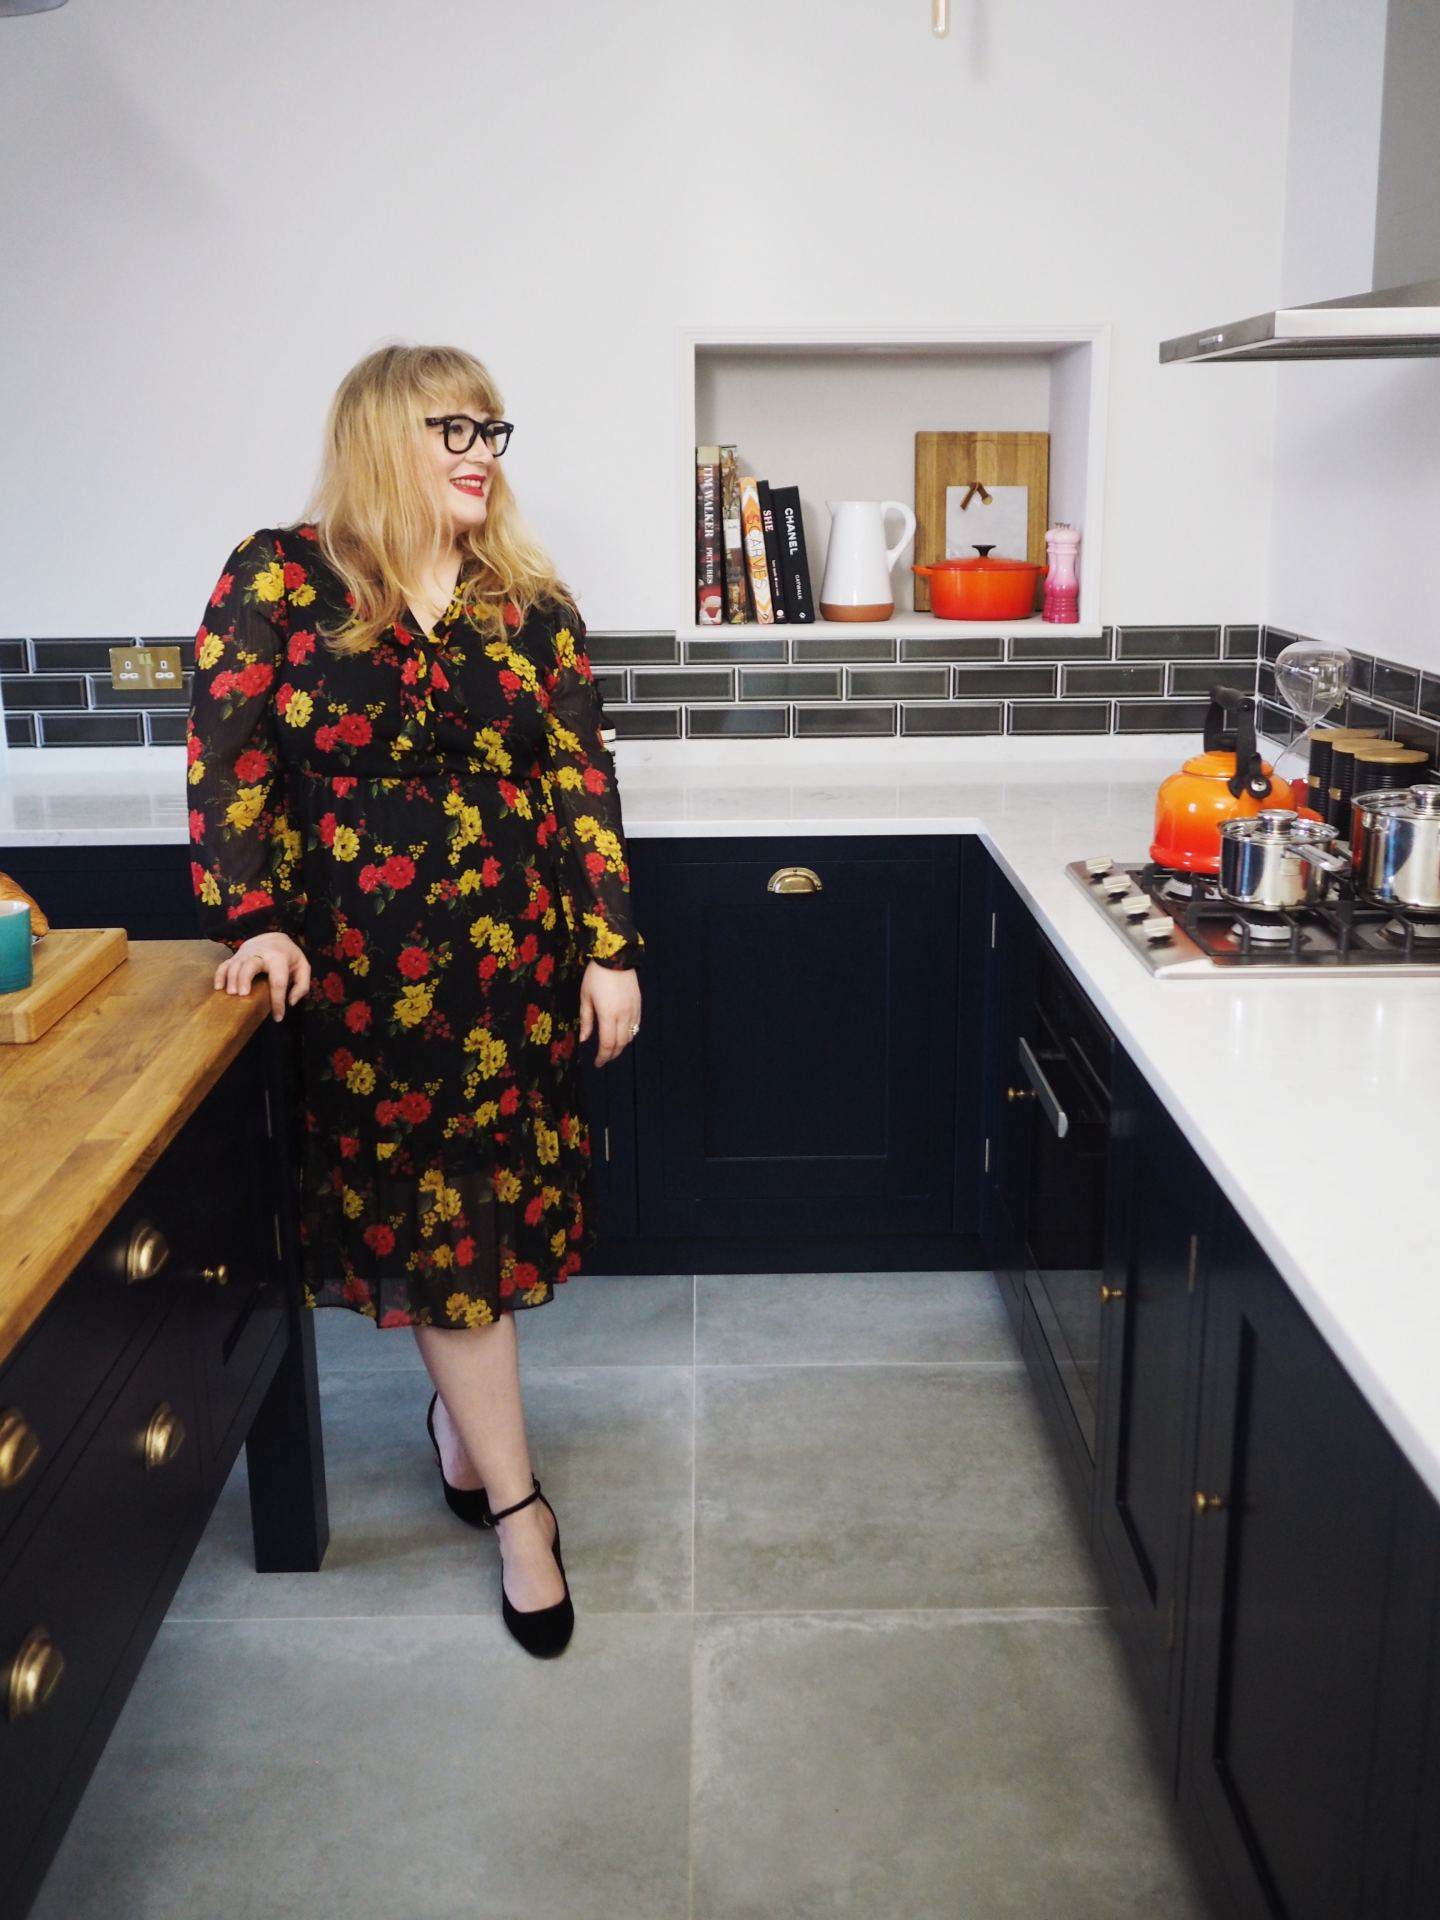 harvey jones kitchen navy blue fashion for lunch blog kitchen